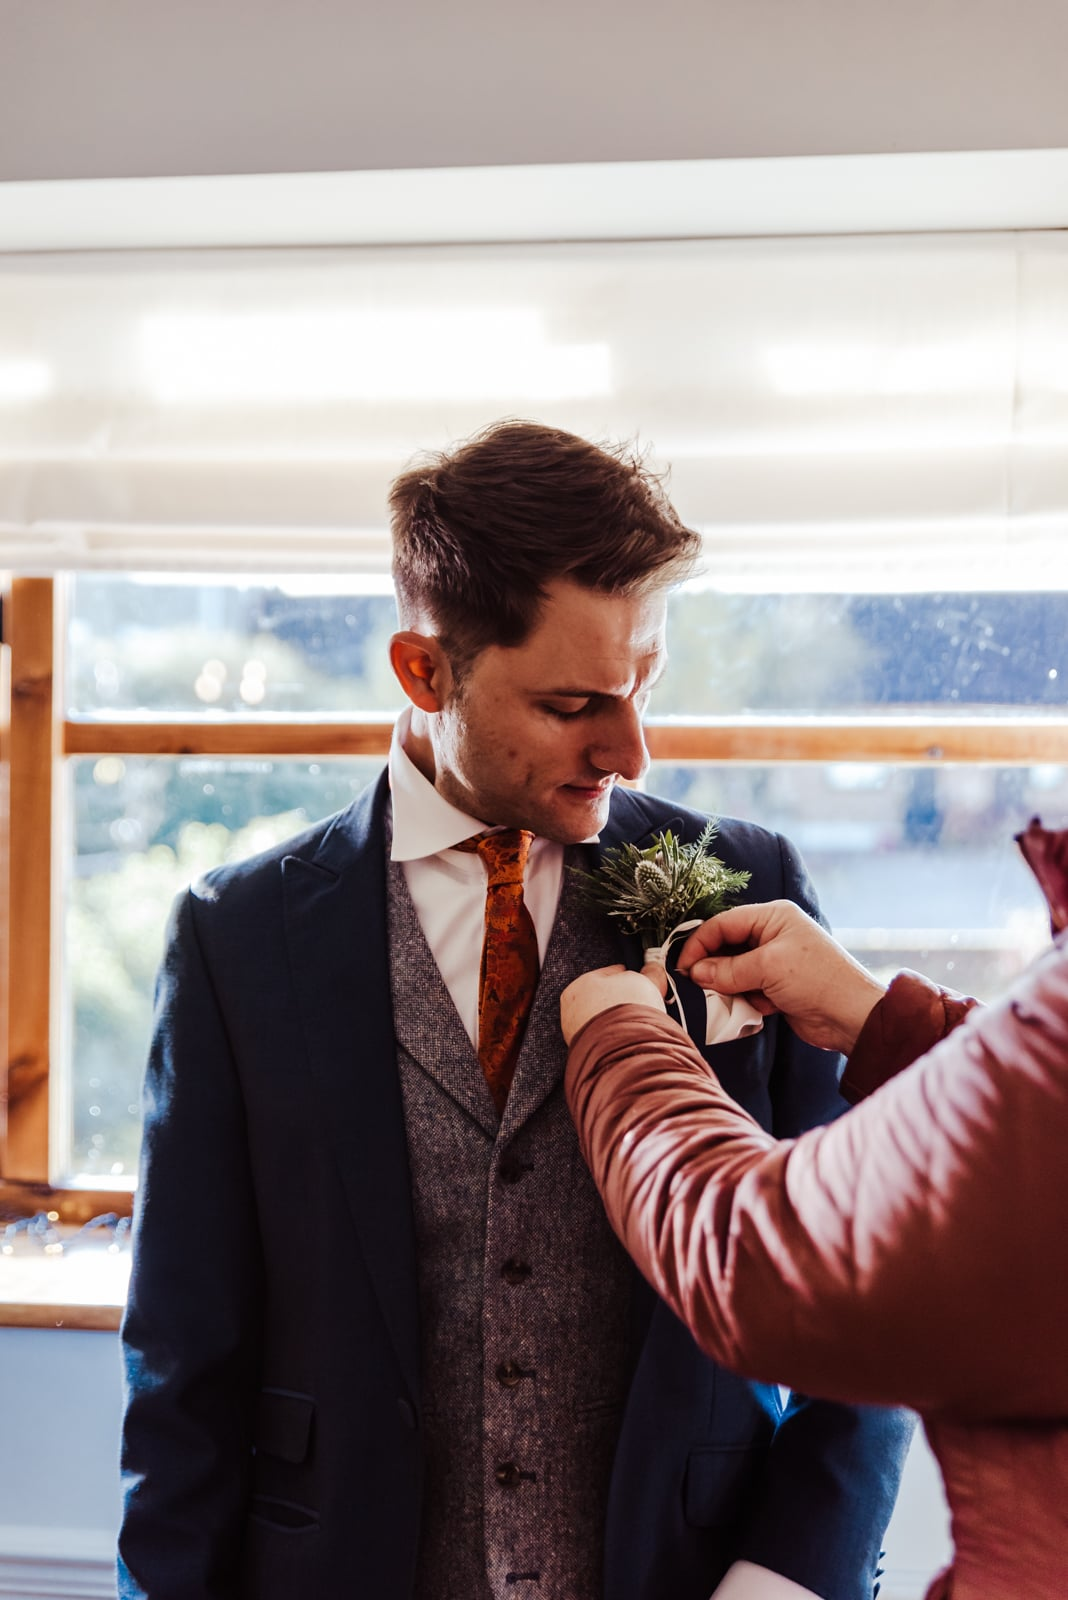 Groom getting ready dinosaur a themed menus Roshni photography The Milling Barn, Bluntswood Hall, Throcking wedding photographer